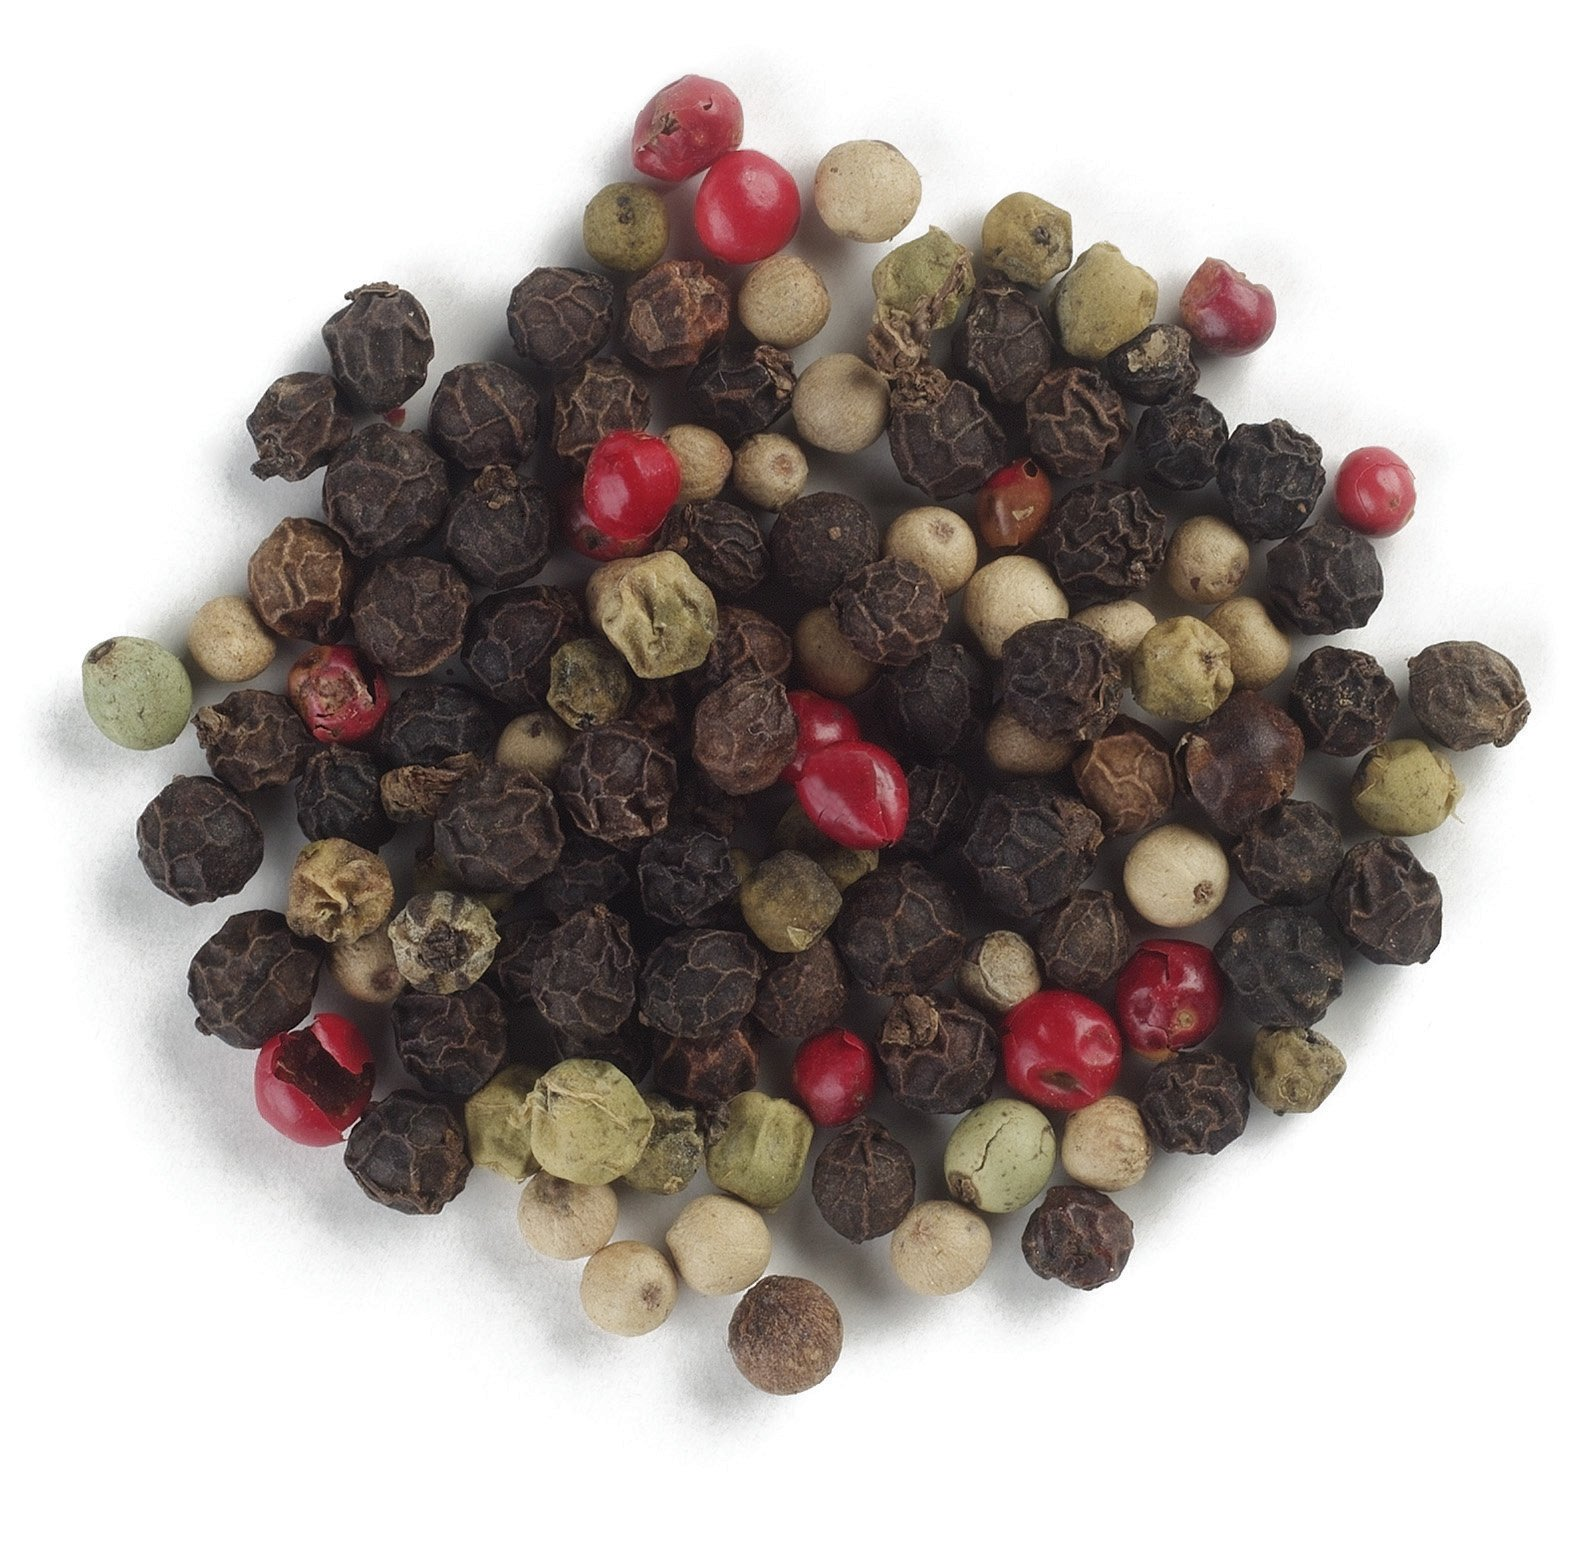 Frontier Peppermill Gourmet 4 Pepper Blend, 16 Ounce Bag by Frontier (Image #4)